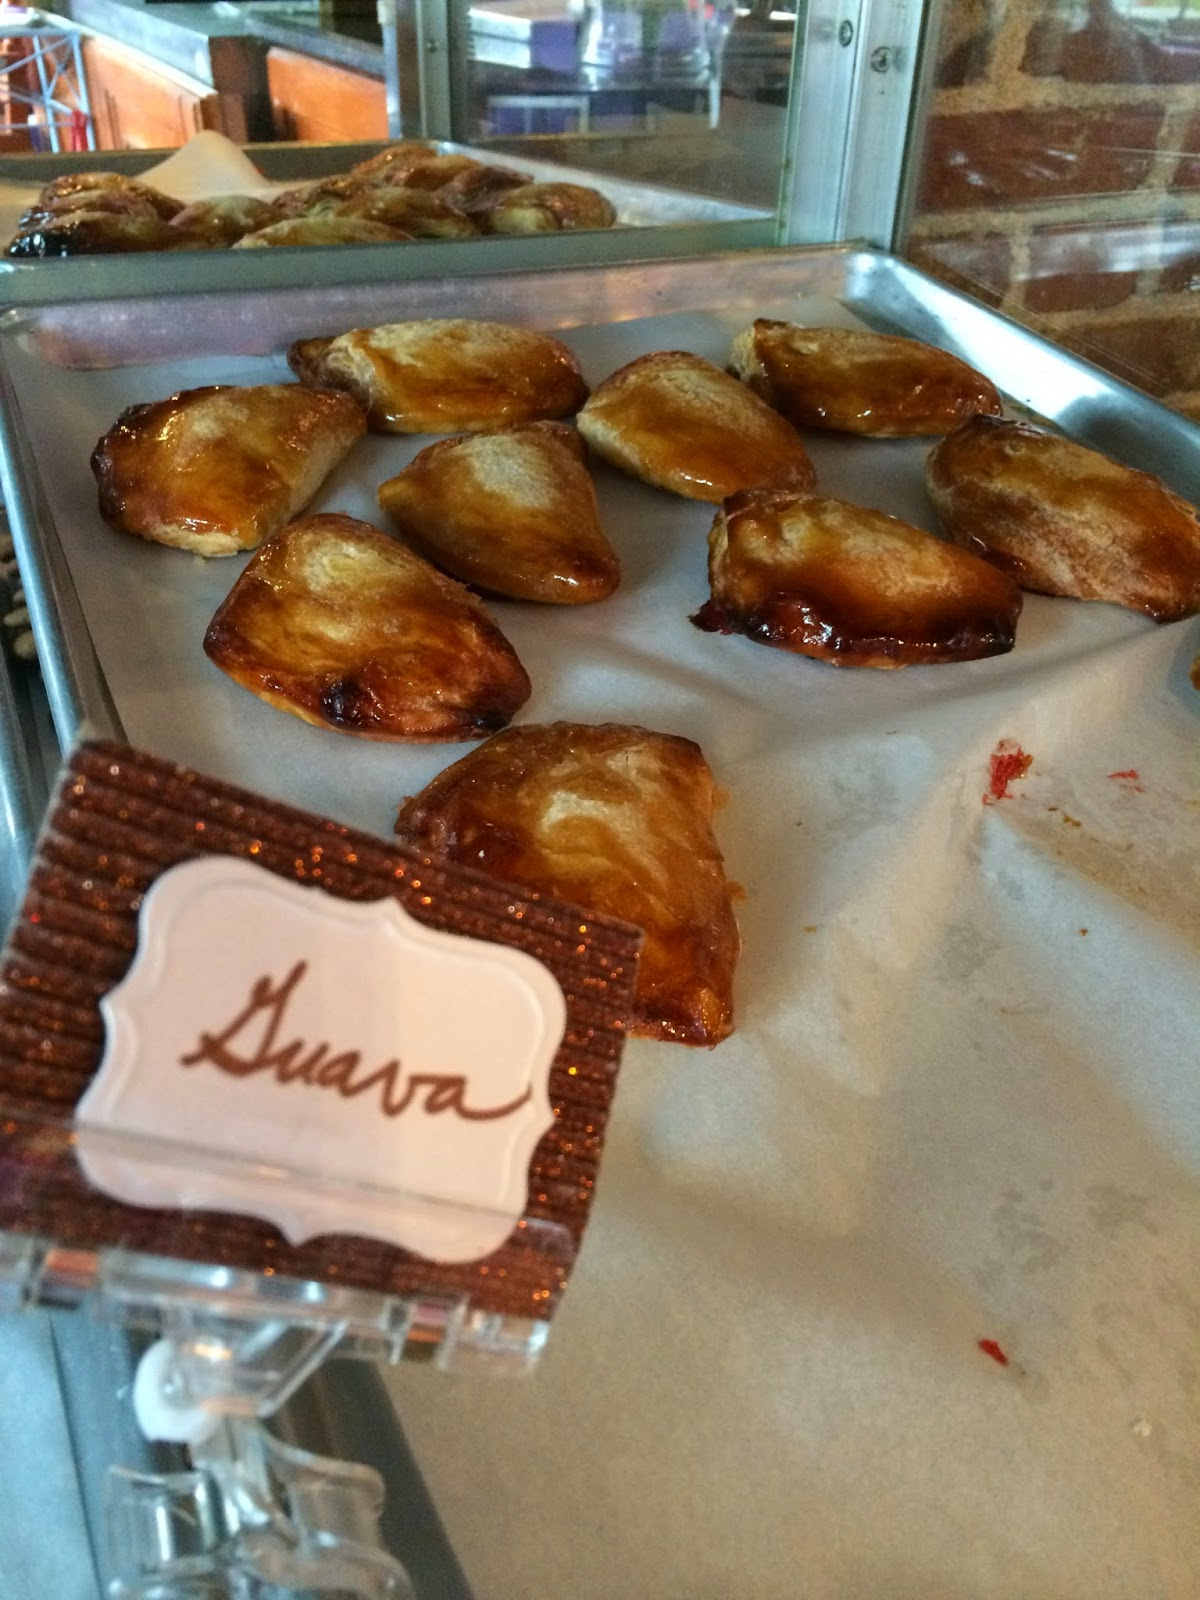 Guave Pastries